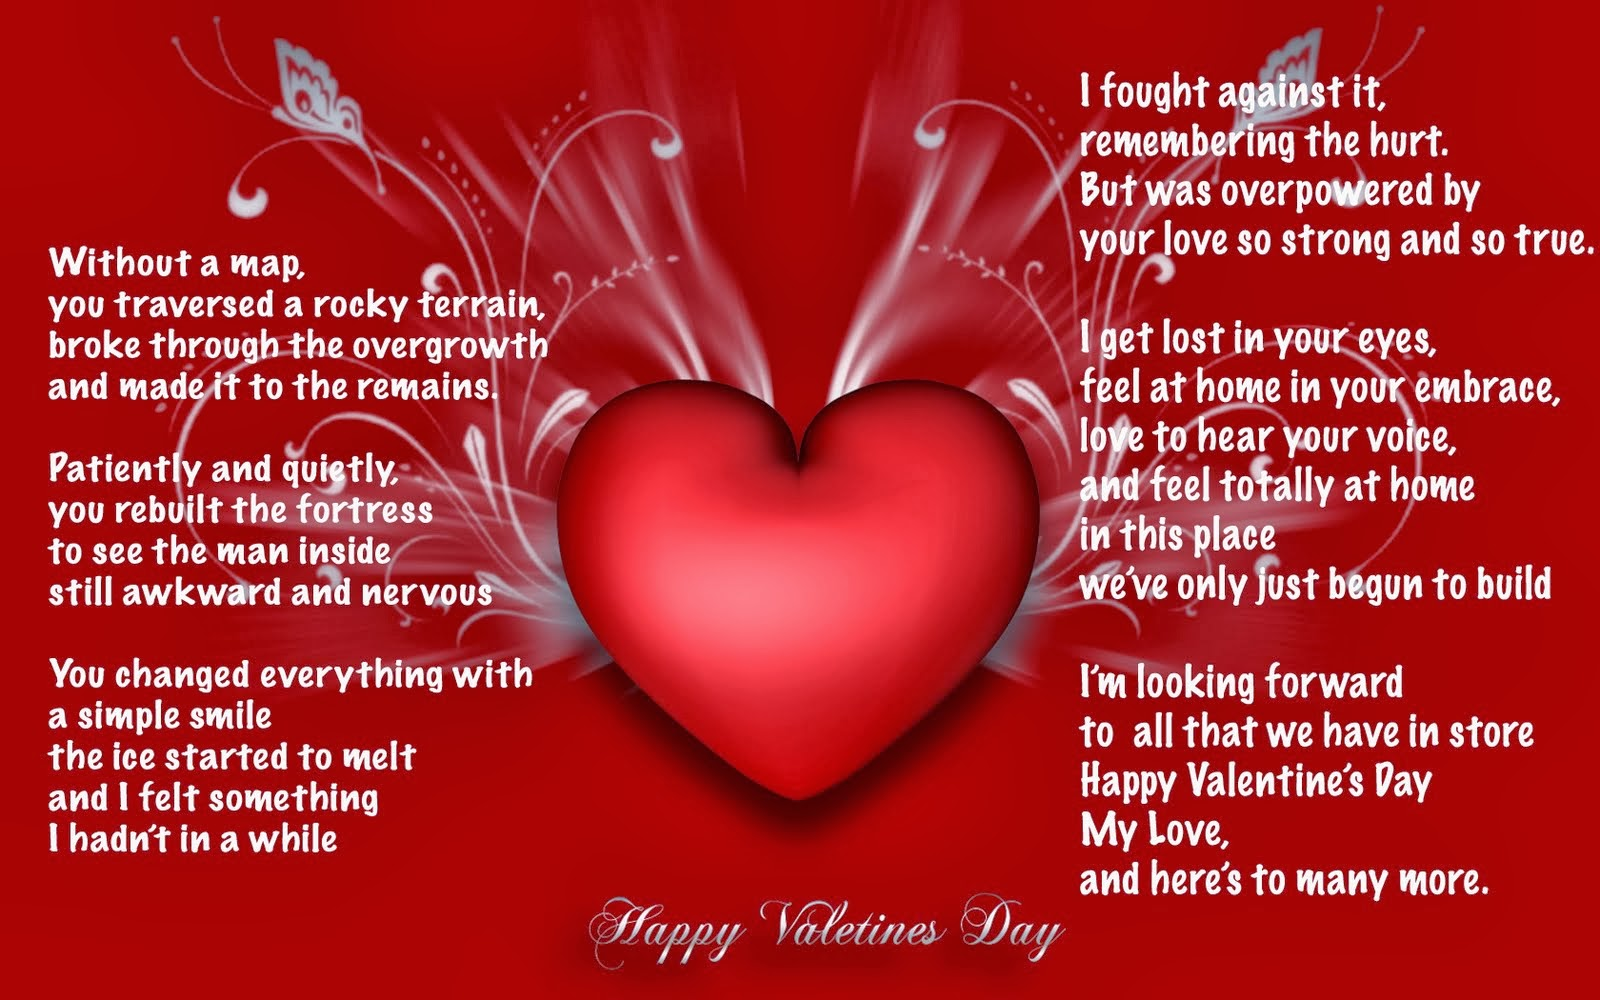 Doc882900 Valentine Day Cards for Wife Happy Valentines day – Best Valentines Day Card Messages